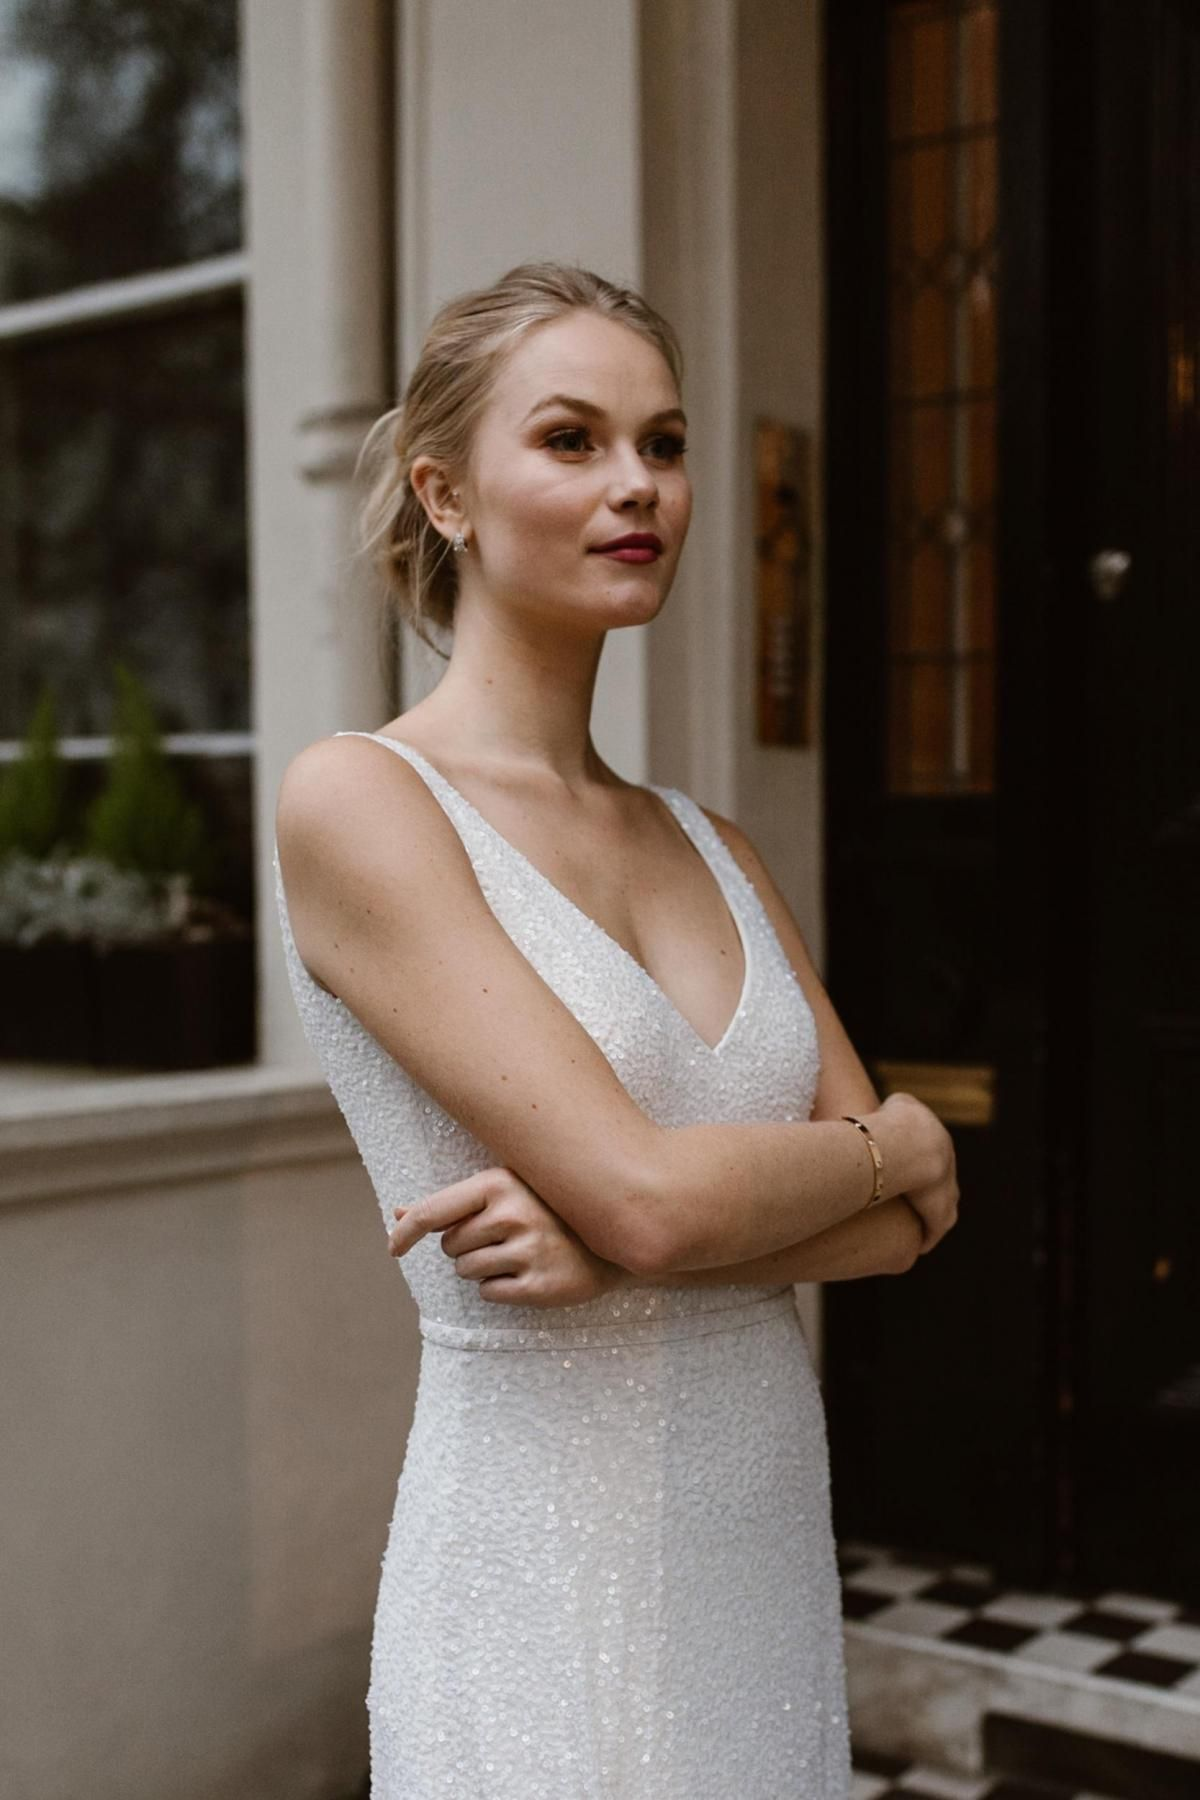 The Lotus gown by Karen Willis Holmes, v-neck sparkly wedding dress.